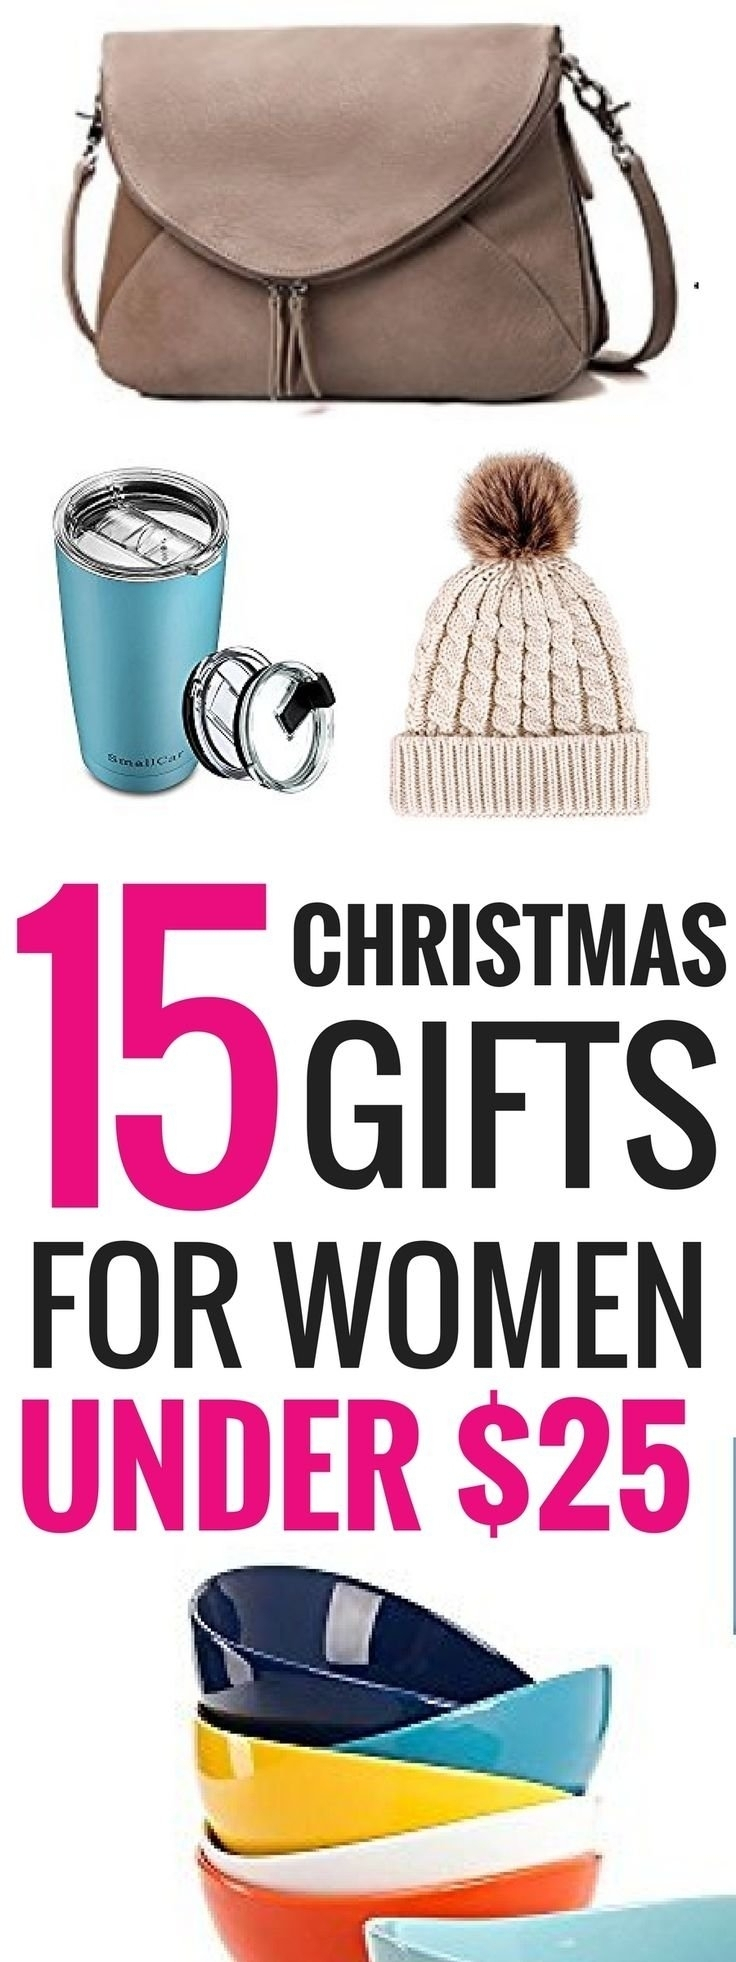 10 Cute Gift Ideas Sister In Law christmas gifts for sister in law scrapheap challenge 2020